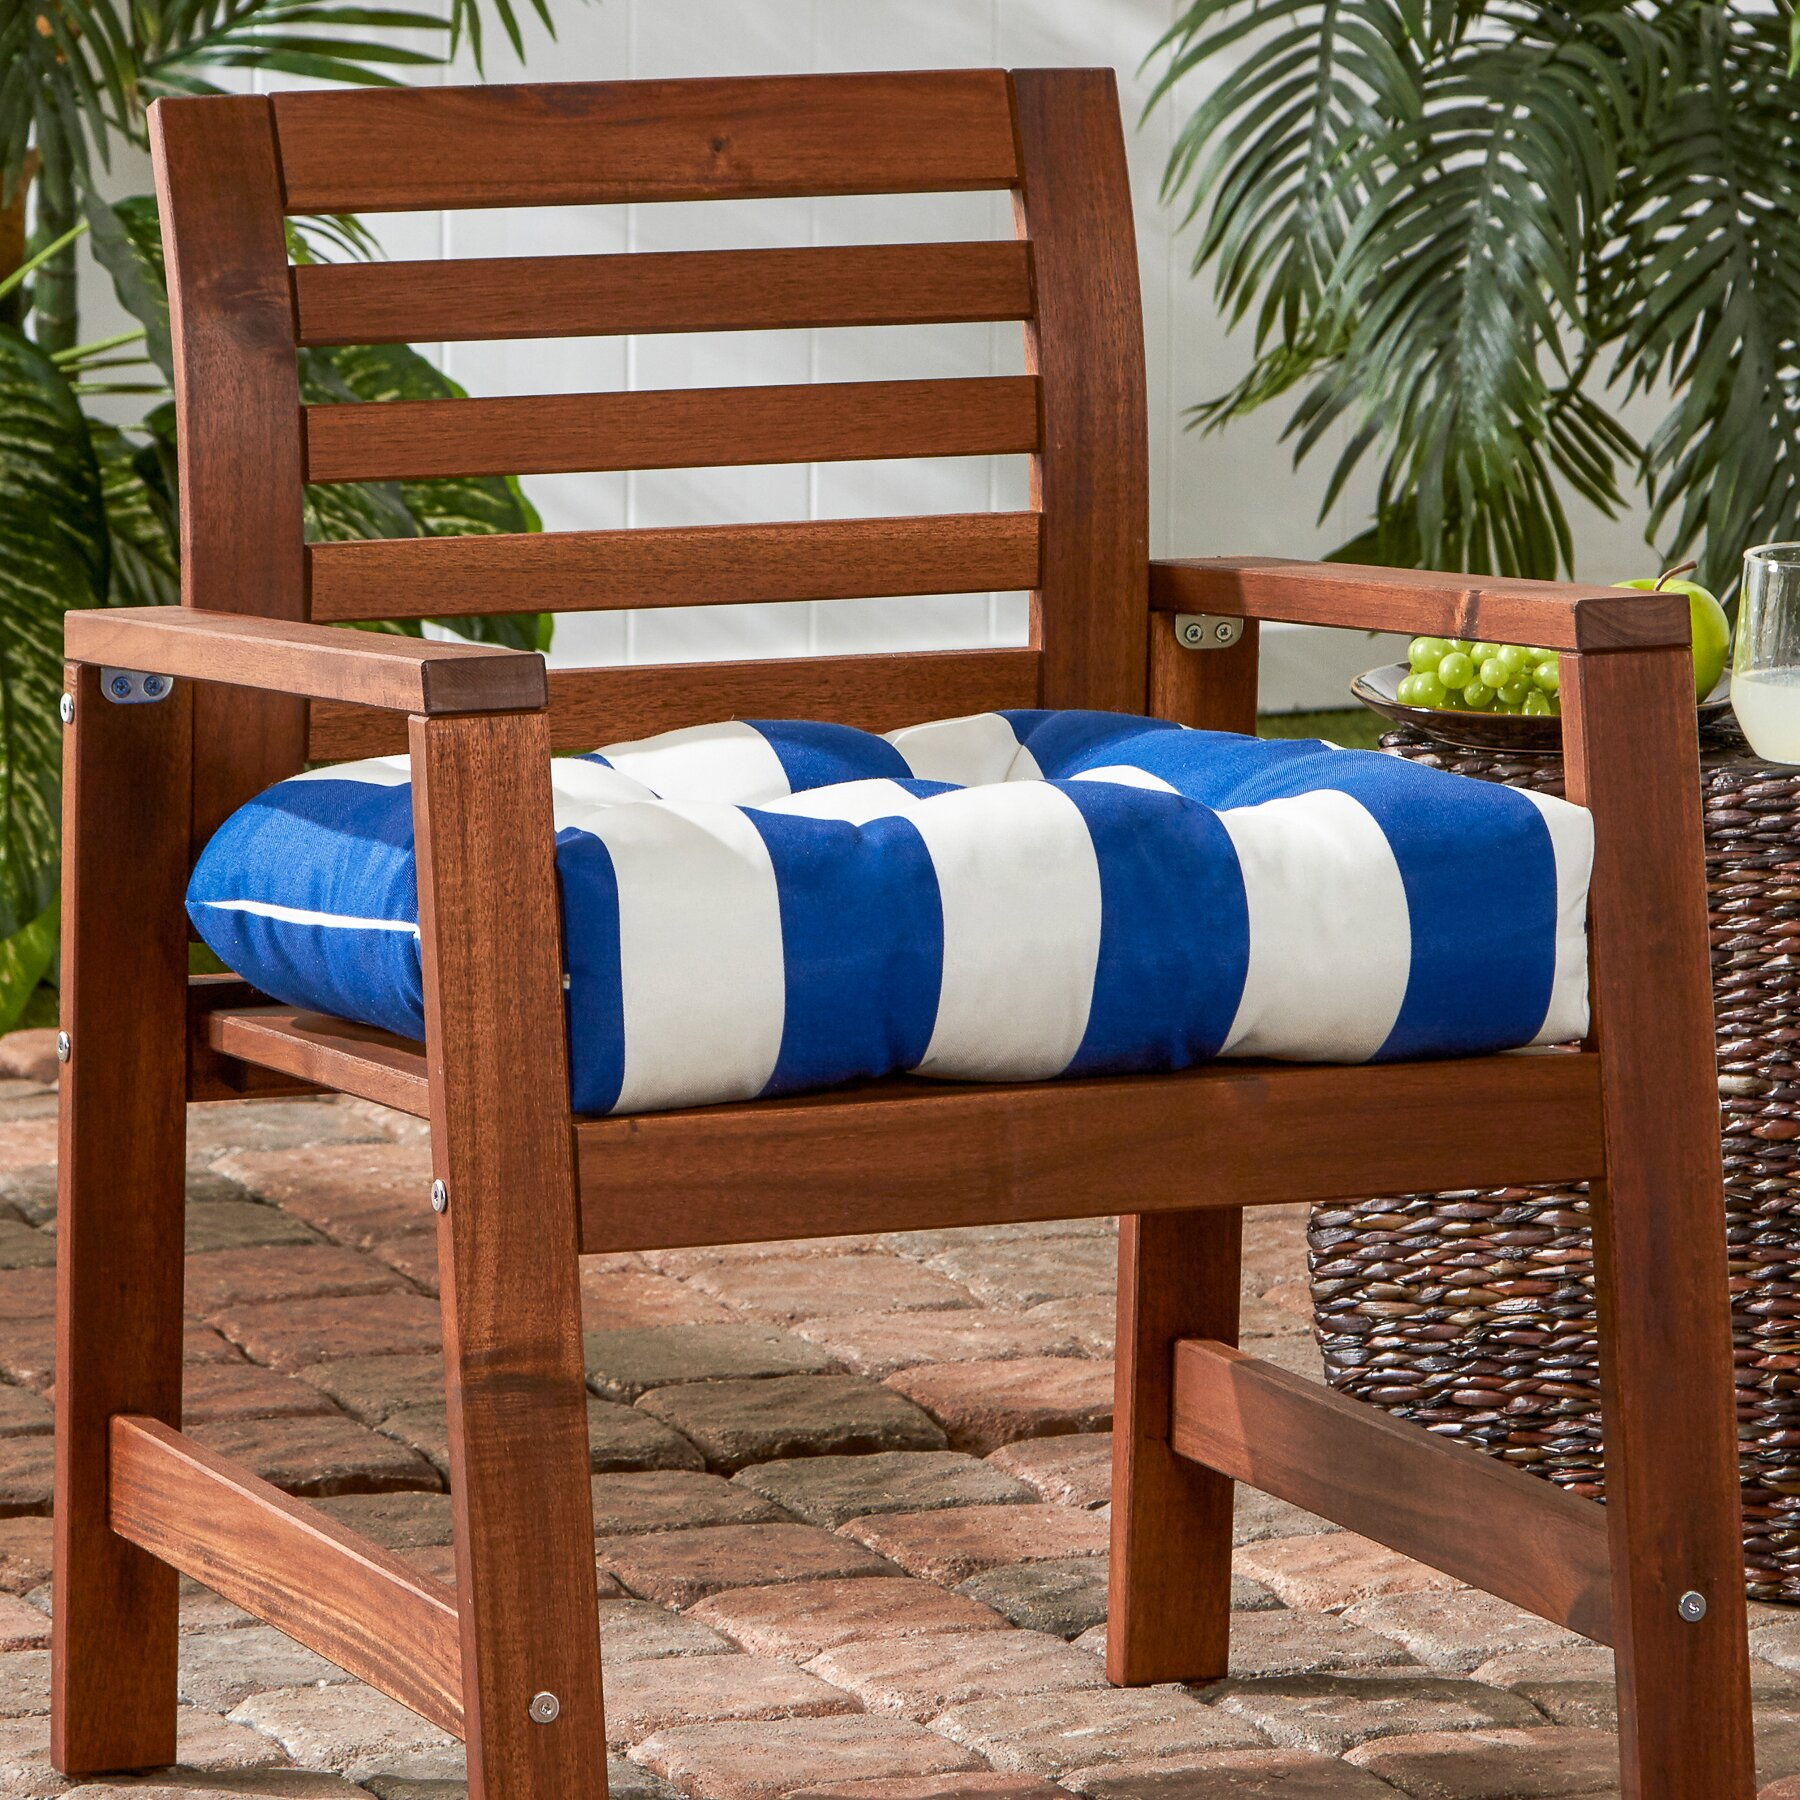 Greendale Home Fashions Outdoor Dining Chair Cushion & Reviews